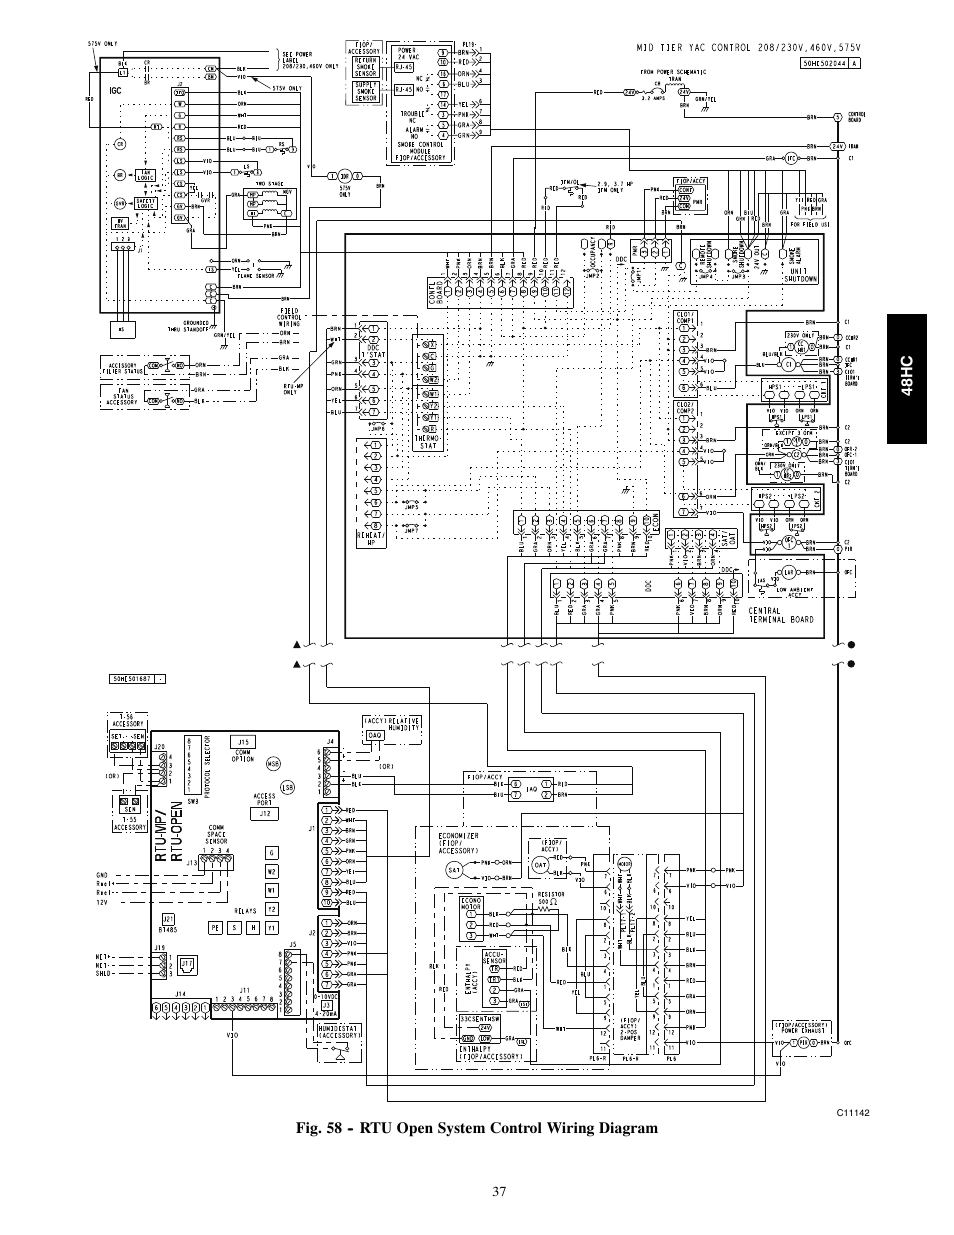 hight resolution of carrier 48 series wiring diagram 32 wiring diagram carrier package unit wiring carrier package unit wiring diagram pdf